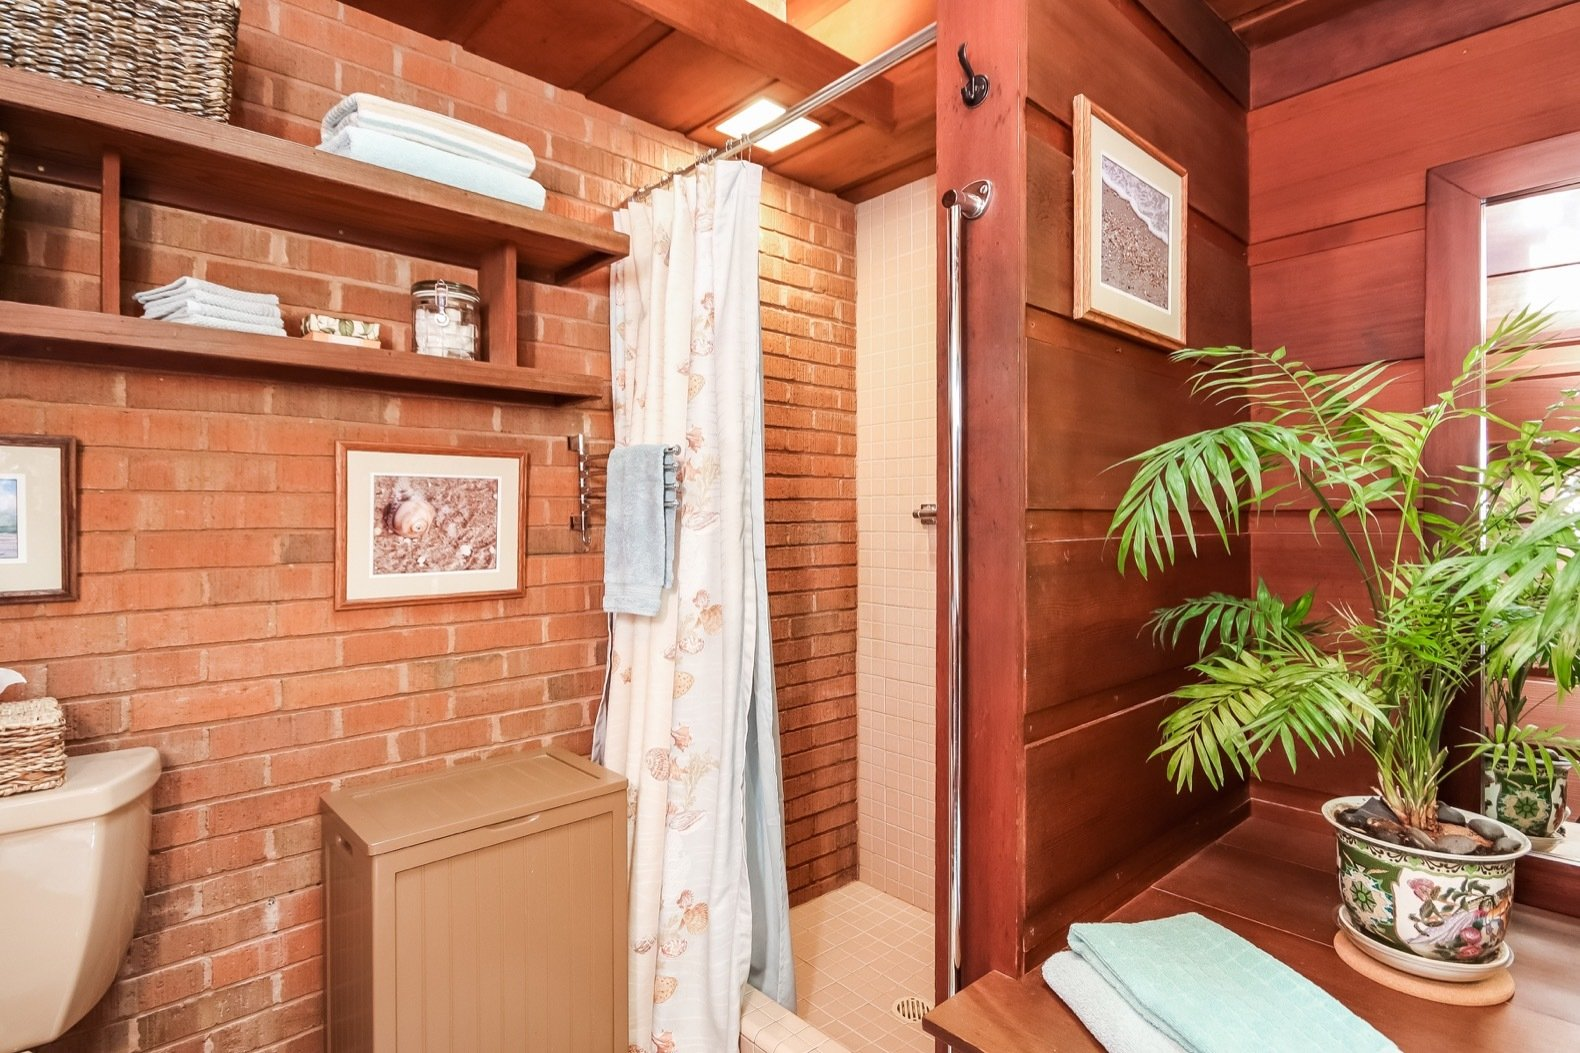 Bath Room, Wood Counter, Concrete Floor, Two Piece Toilet, Corner Shower, and Ceiling Lighting The master bathroom boasts an exposed brick wall.  Photo 11 of 17 in A Gorgeous Frank Lloyd Wright Home Hits the Market For the First Time at $1.2M